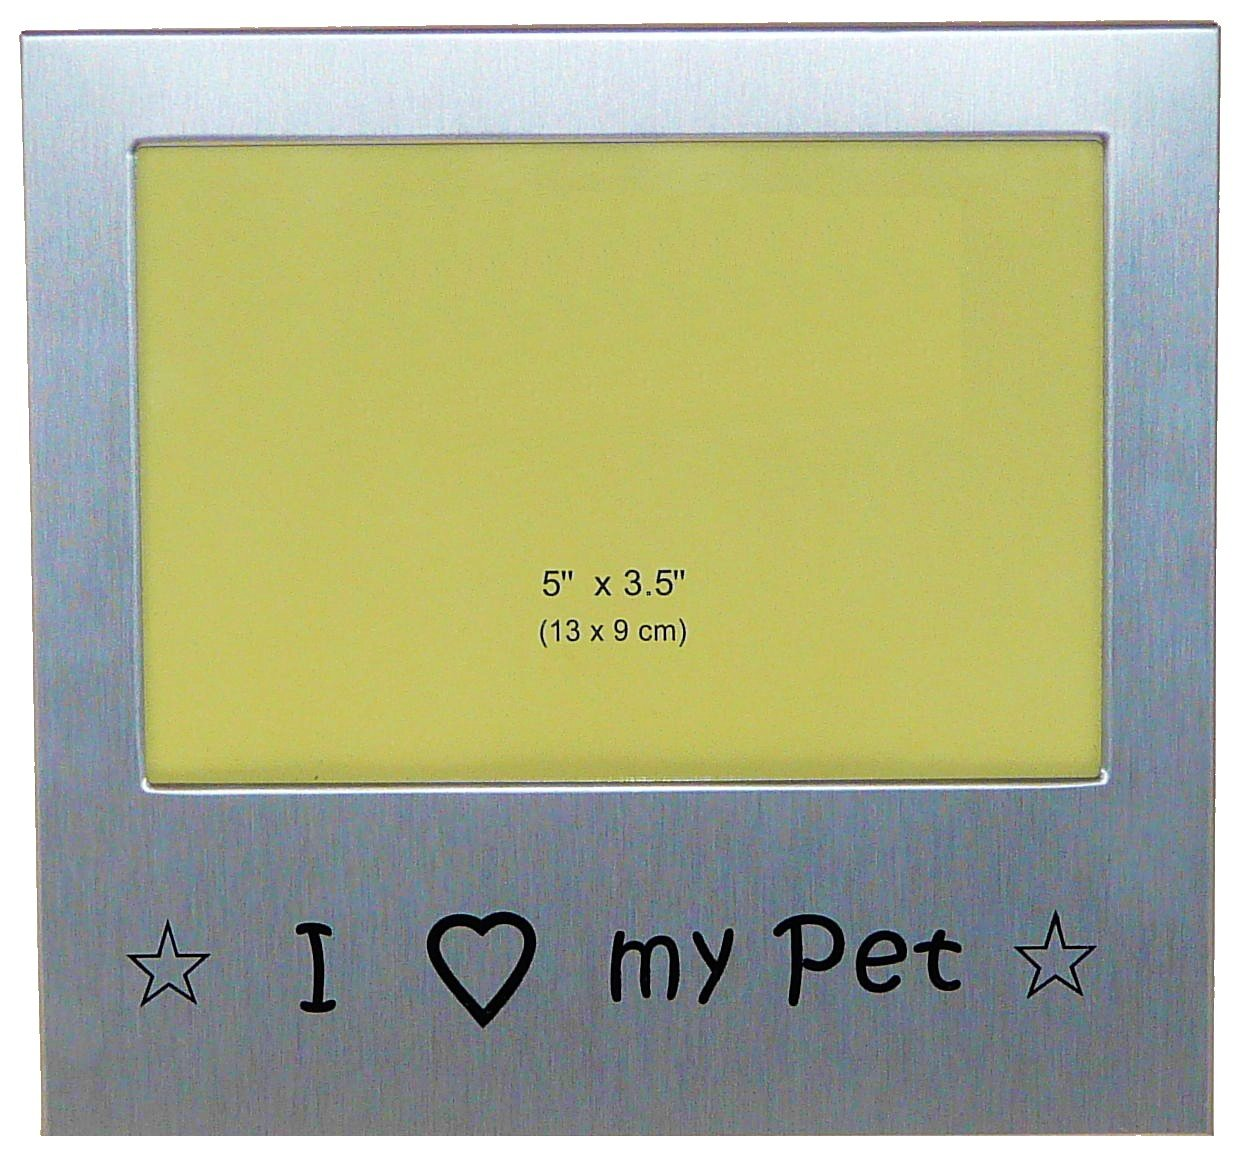 I Love My Pet Photo Picture Frame Gift 5 x 3.5